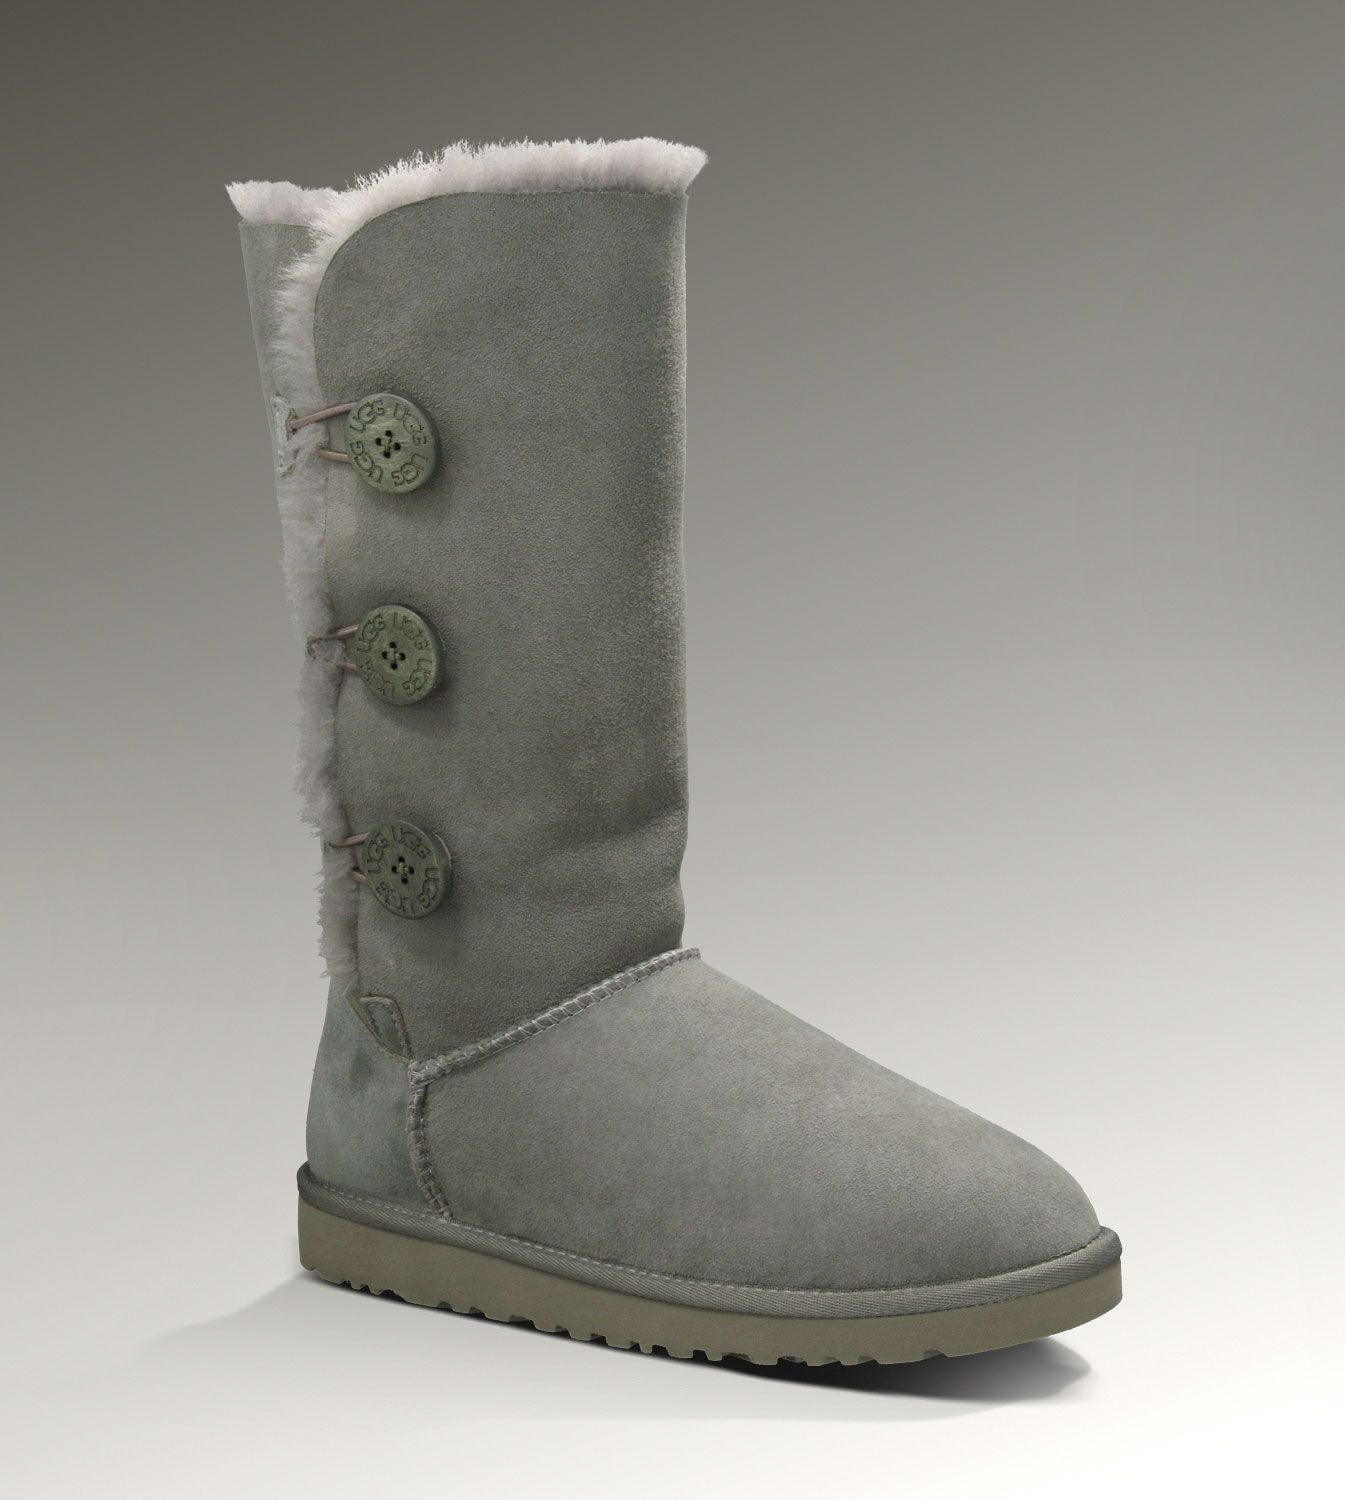 1f2cf02727e UGGS Bailey Button Triplet – 37 $130 hopefully christmasss | Shoes ...